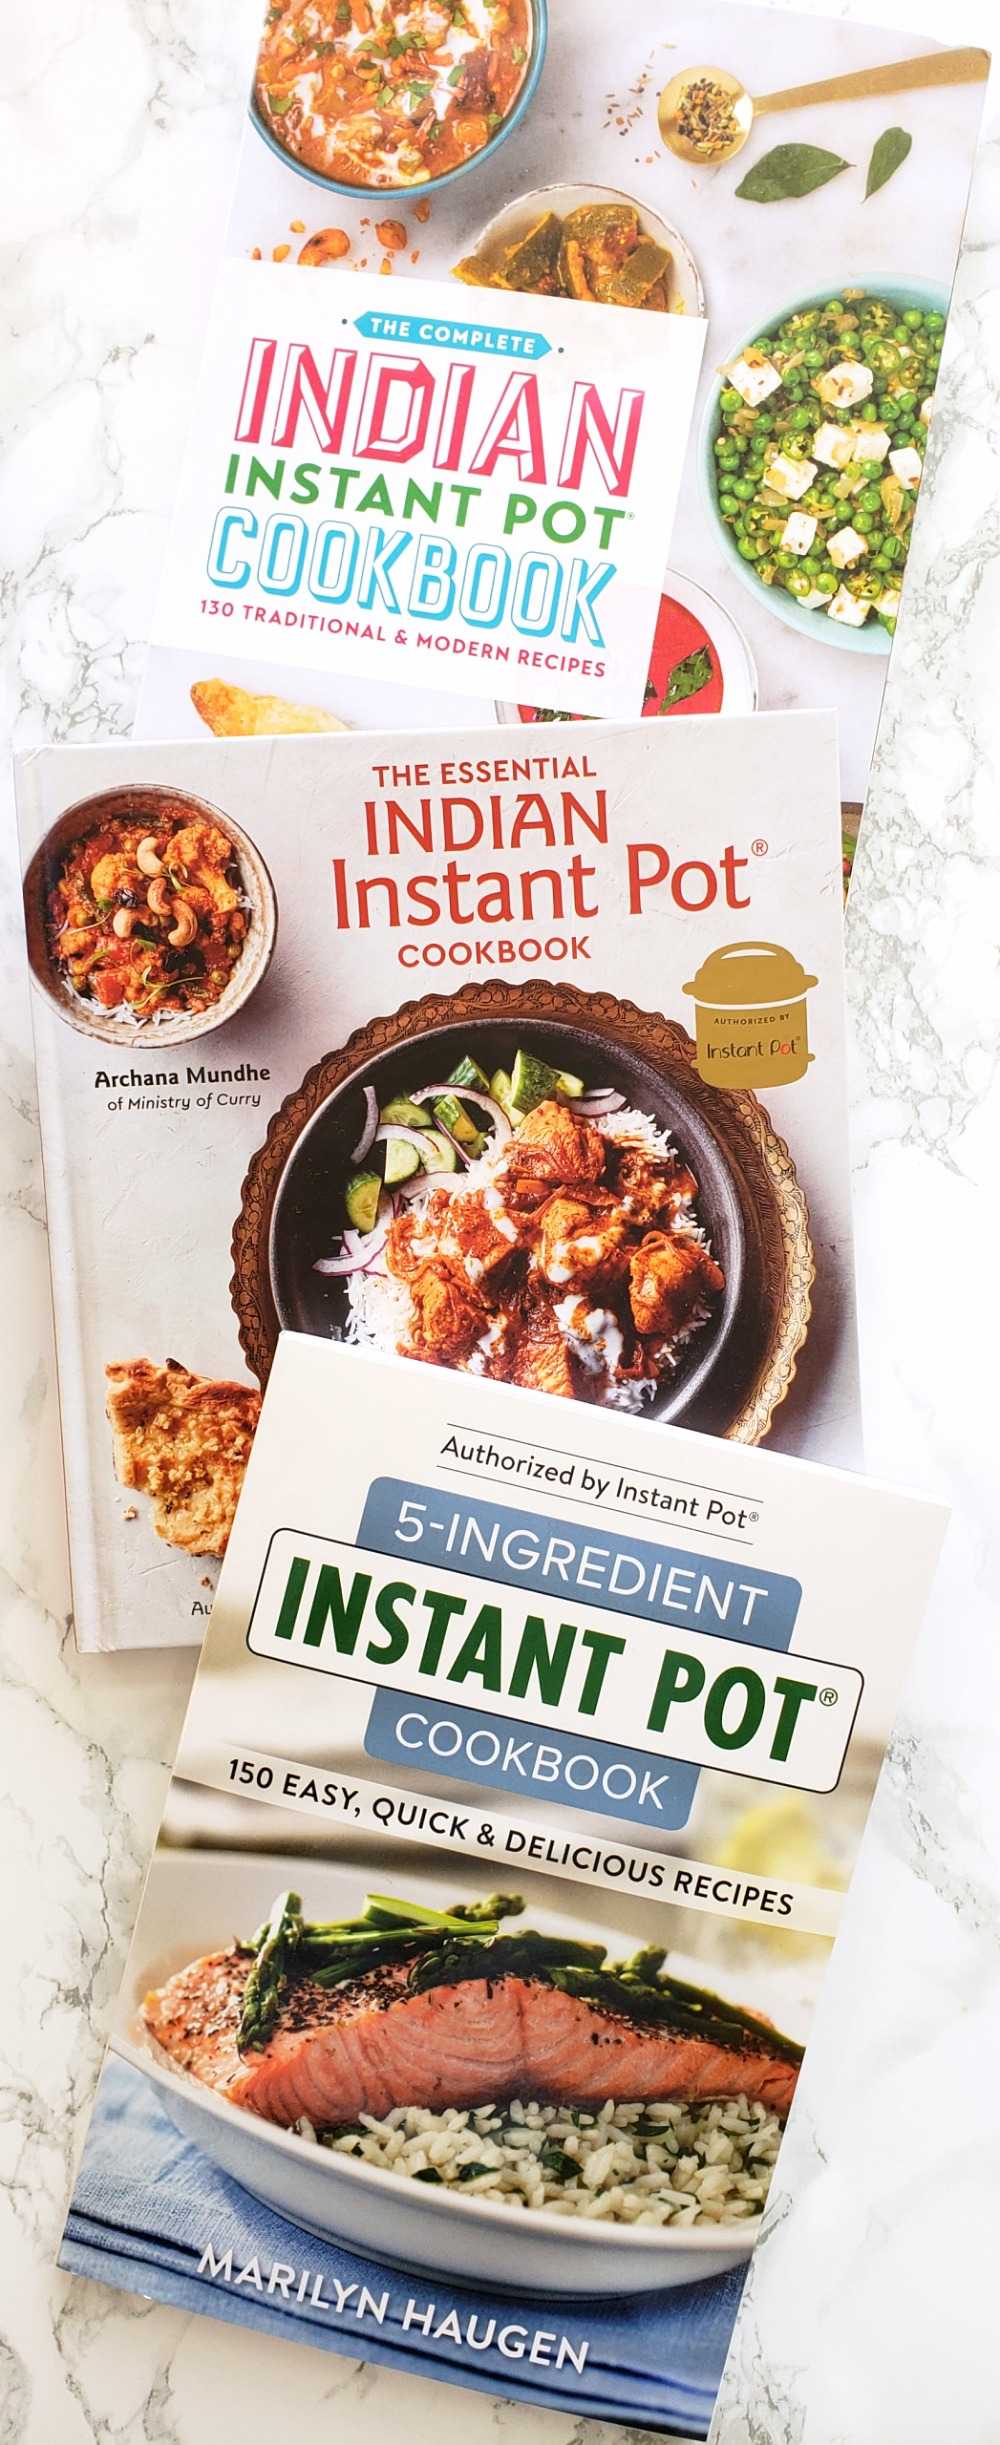 3 Instant Pot cookbooks